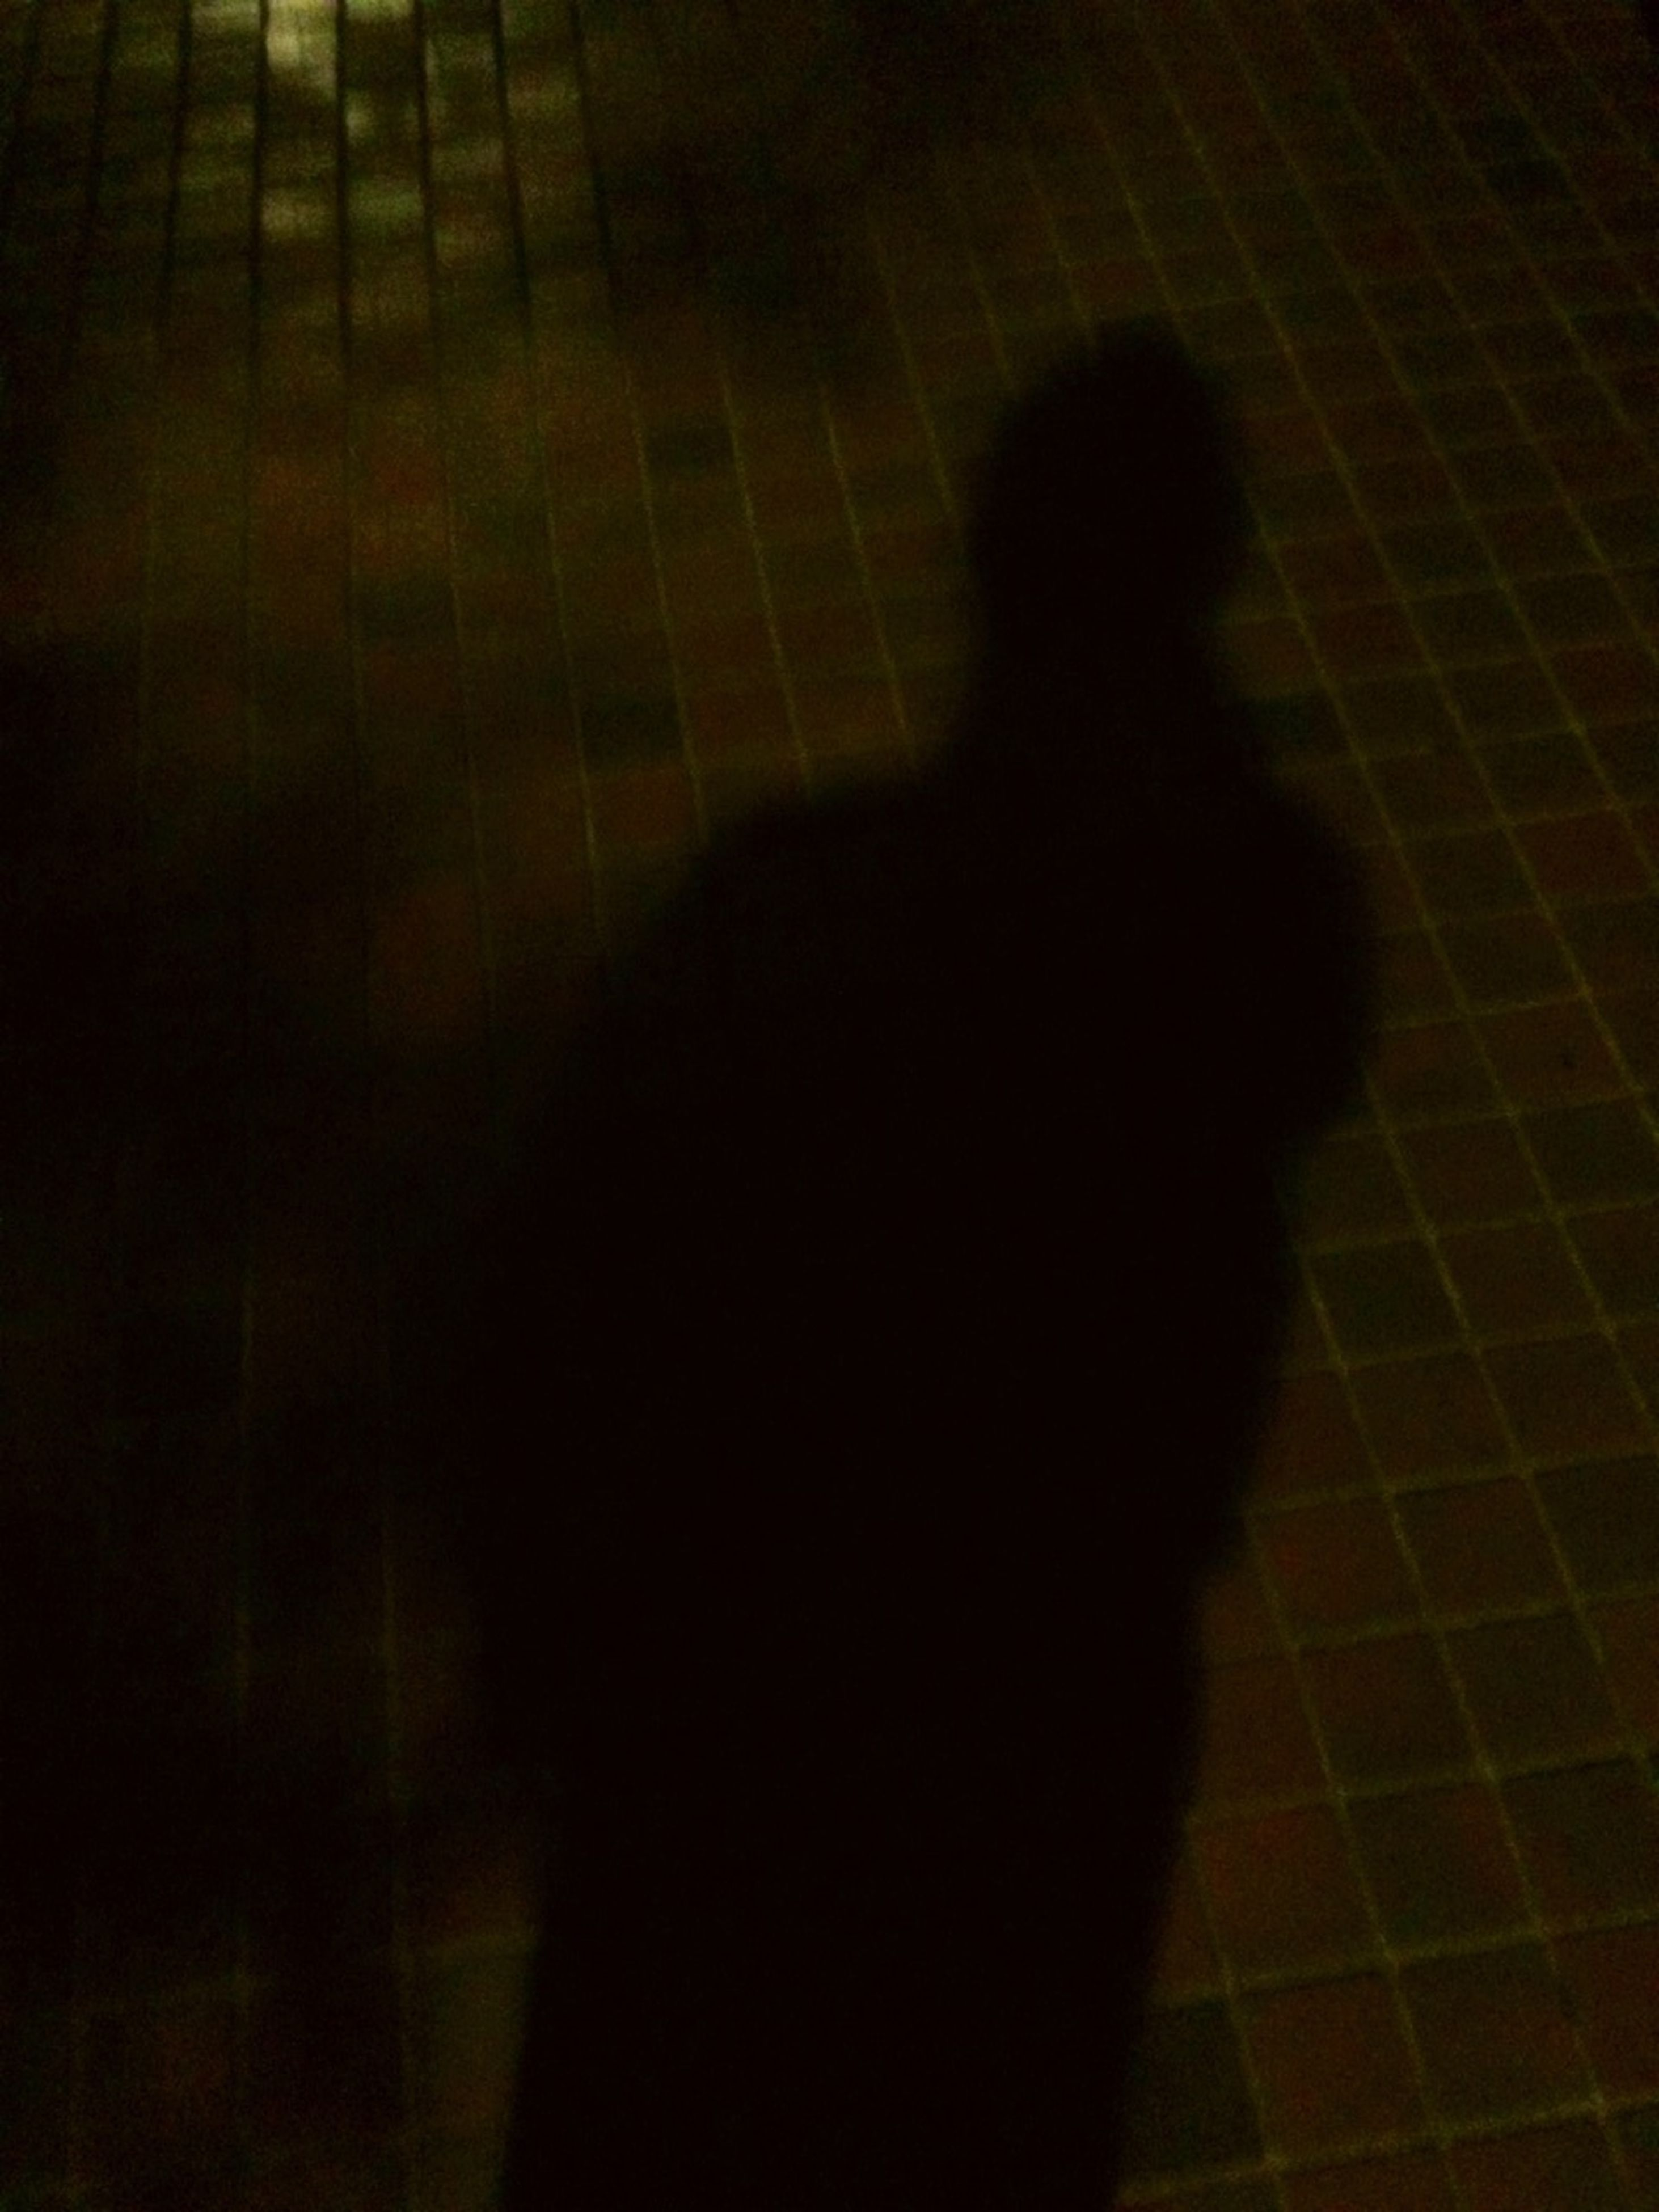 shadow, night, focus on shadow, high angle view, lifestyles, tiled floor, standing, sunlight, silhouette, walking, men, unrecognizable person, indoors, dark, flooring, street, leisure activity, person